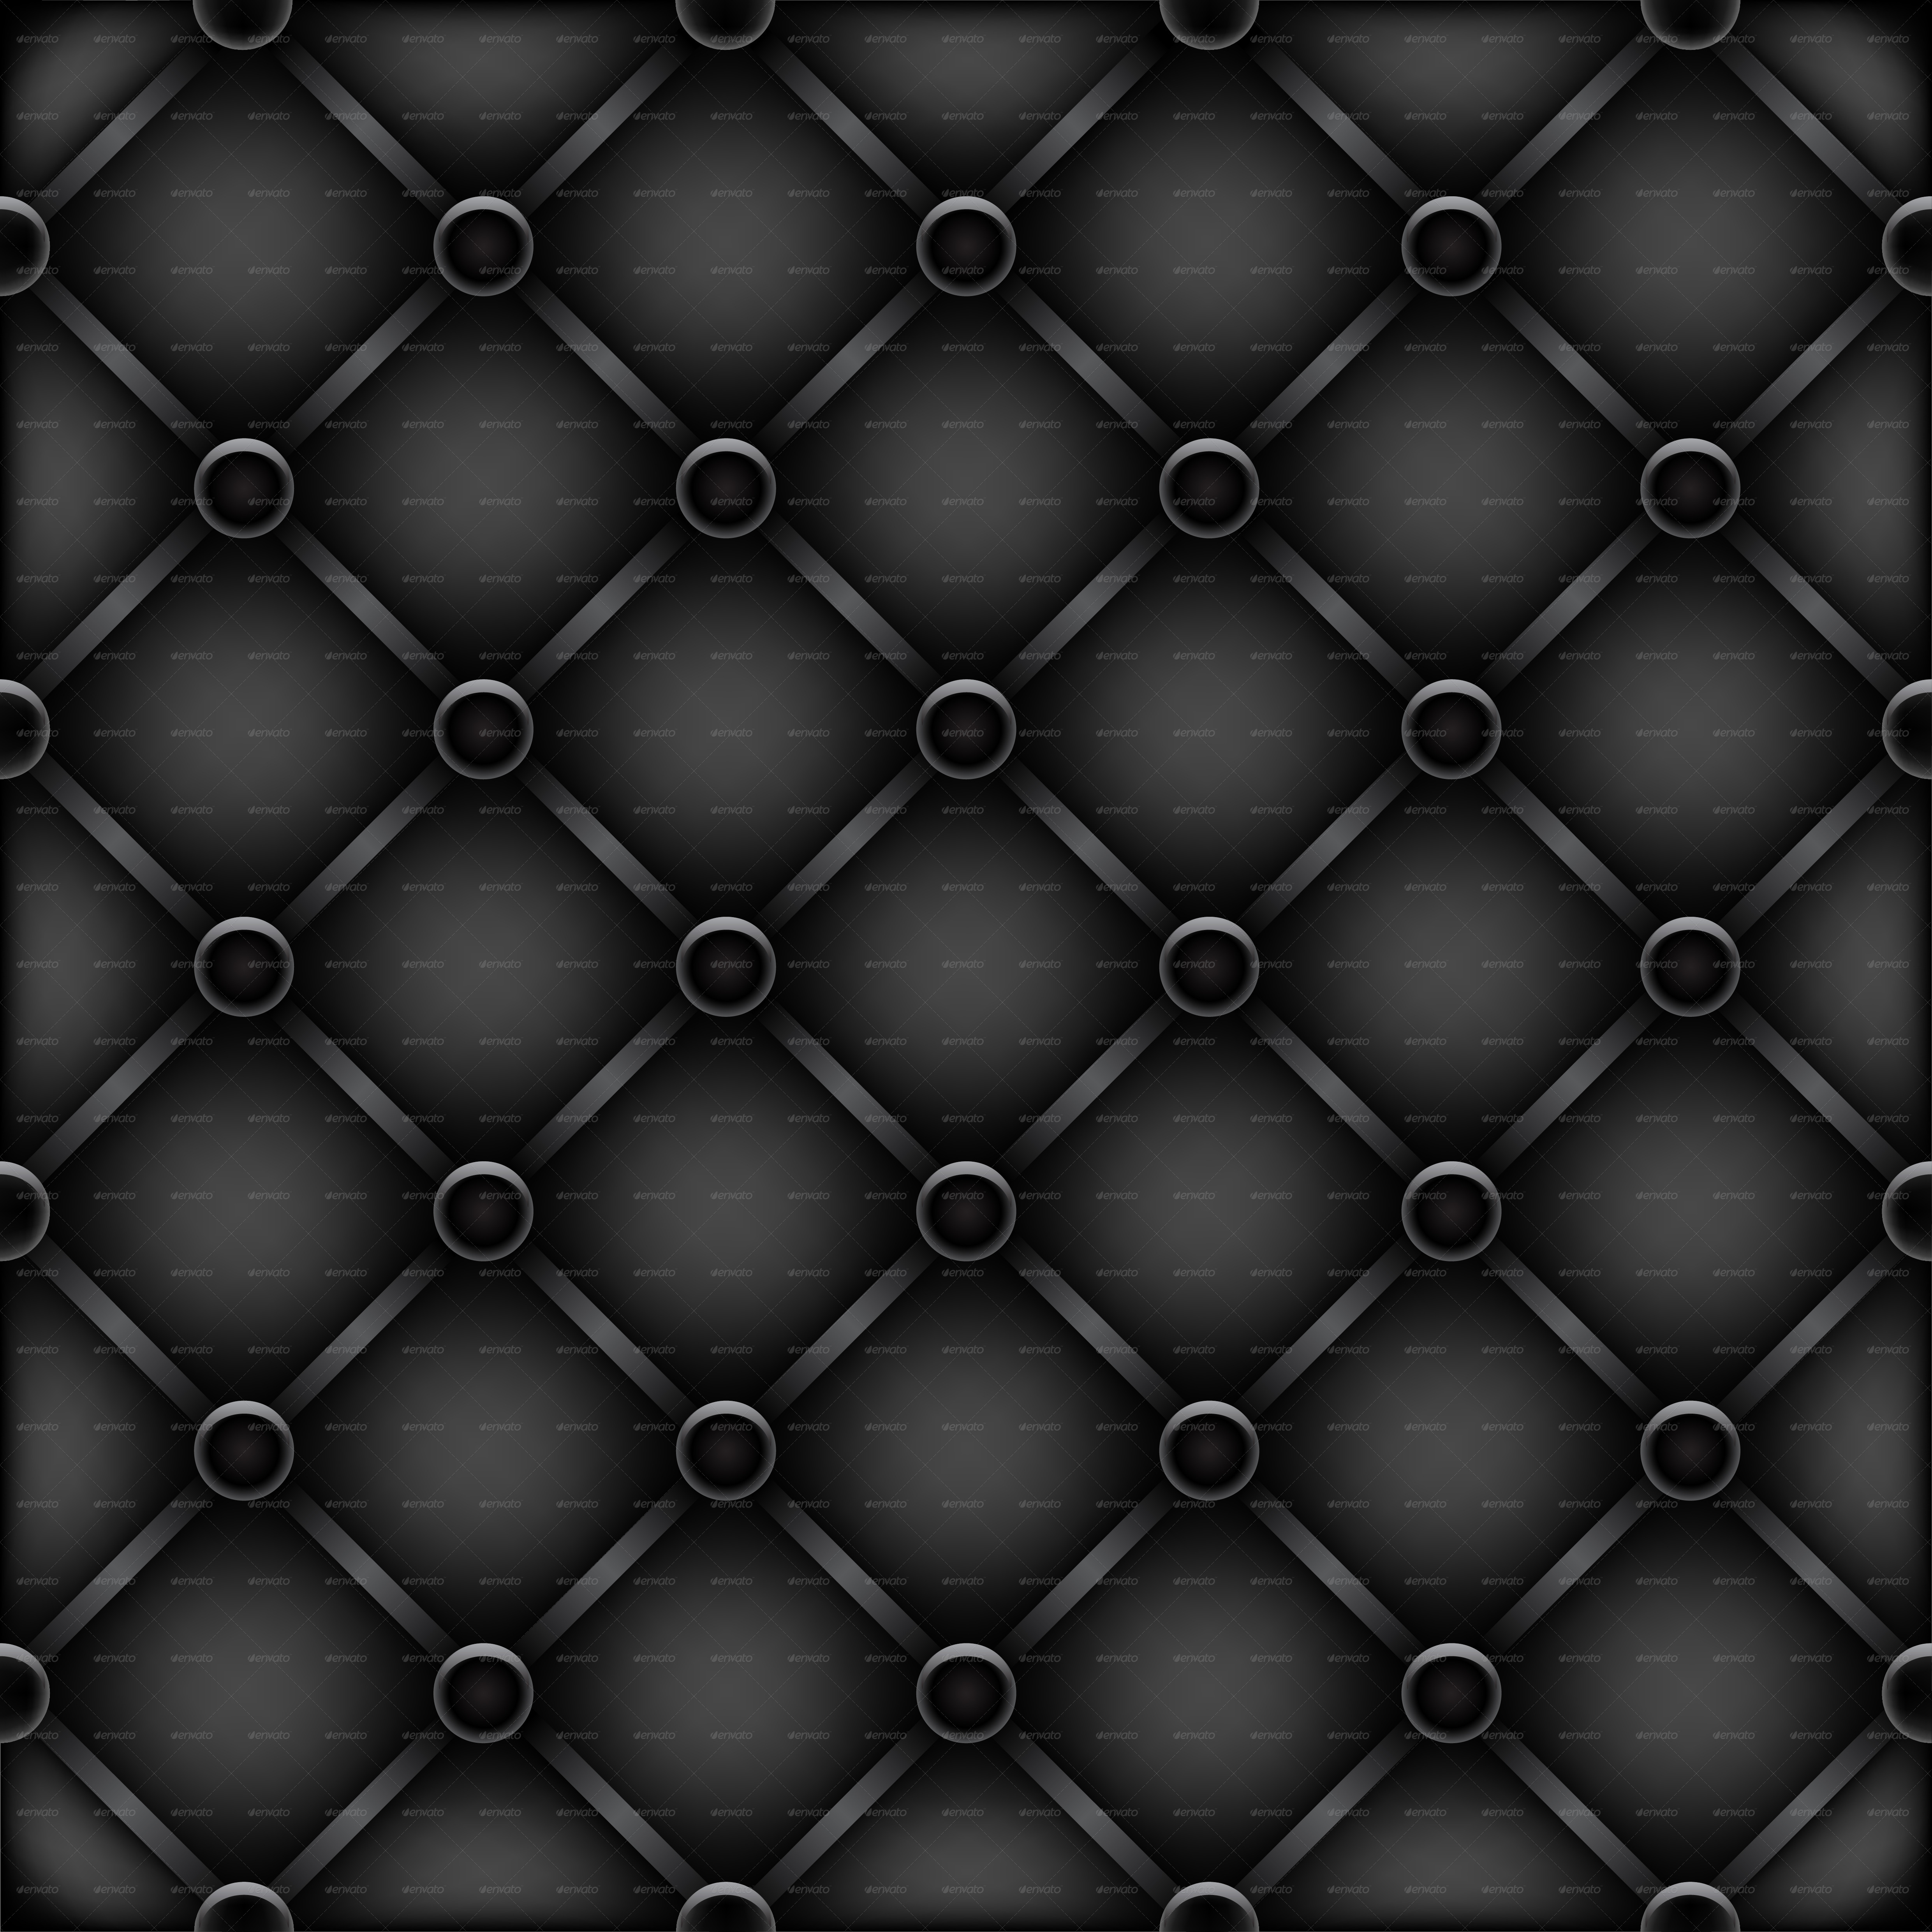 Leather cushion texture - Black Leather Furniture Texture Jpg